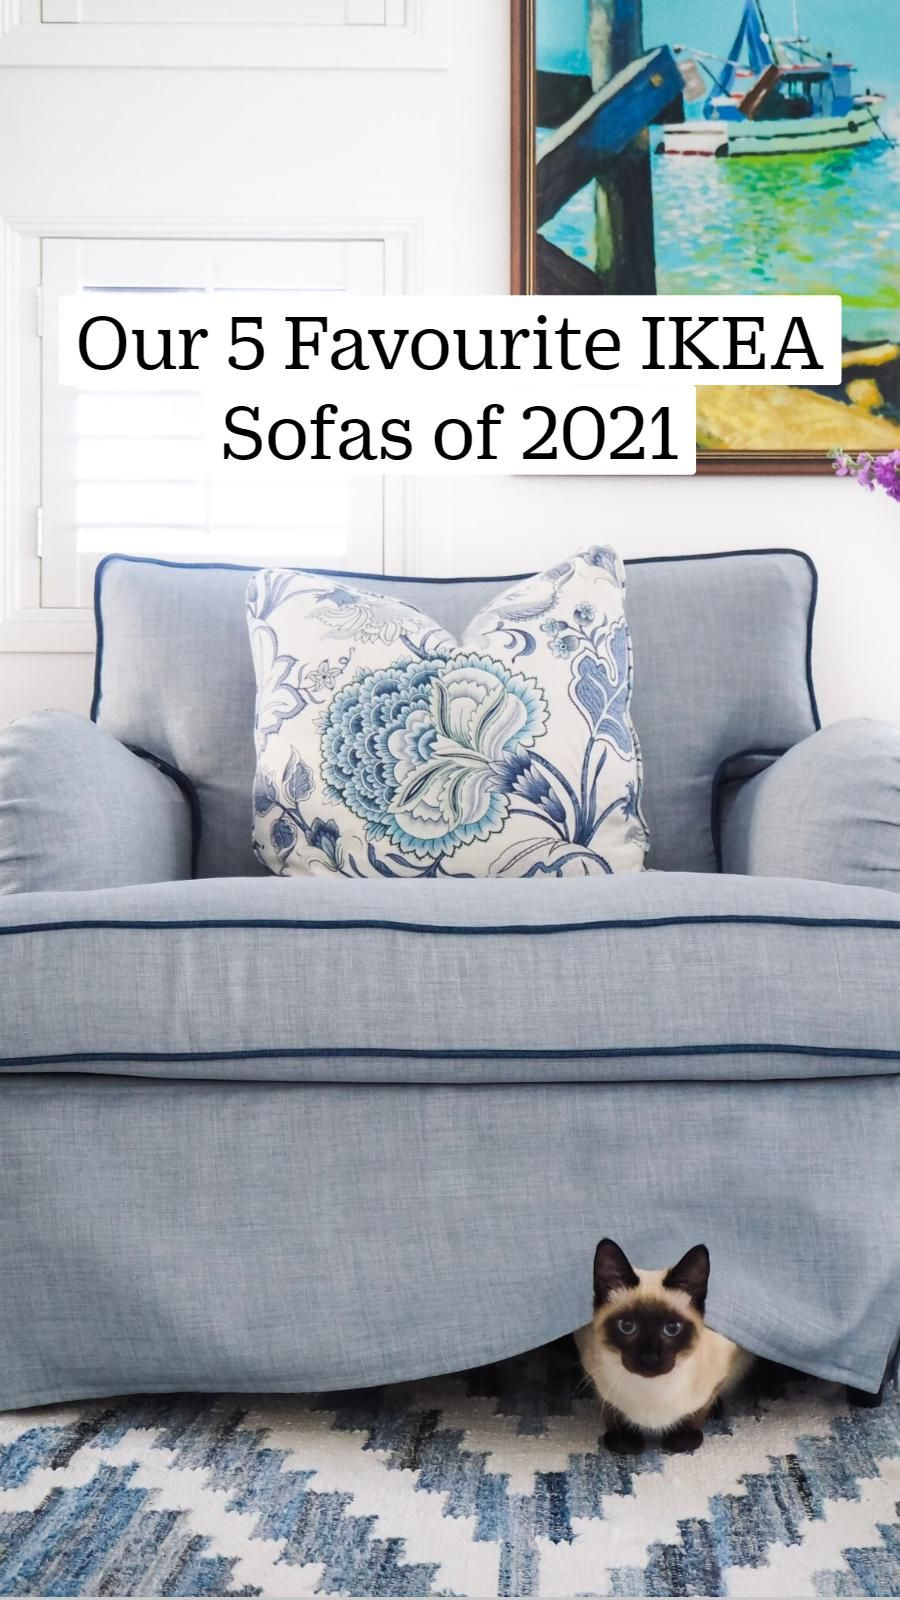 100+ Our Top 5 IKEA Sofas of 2021